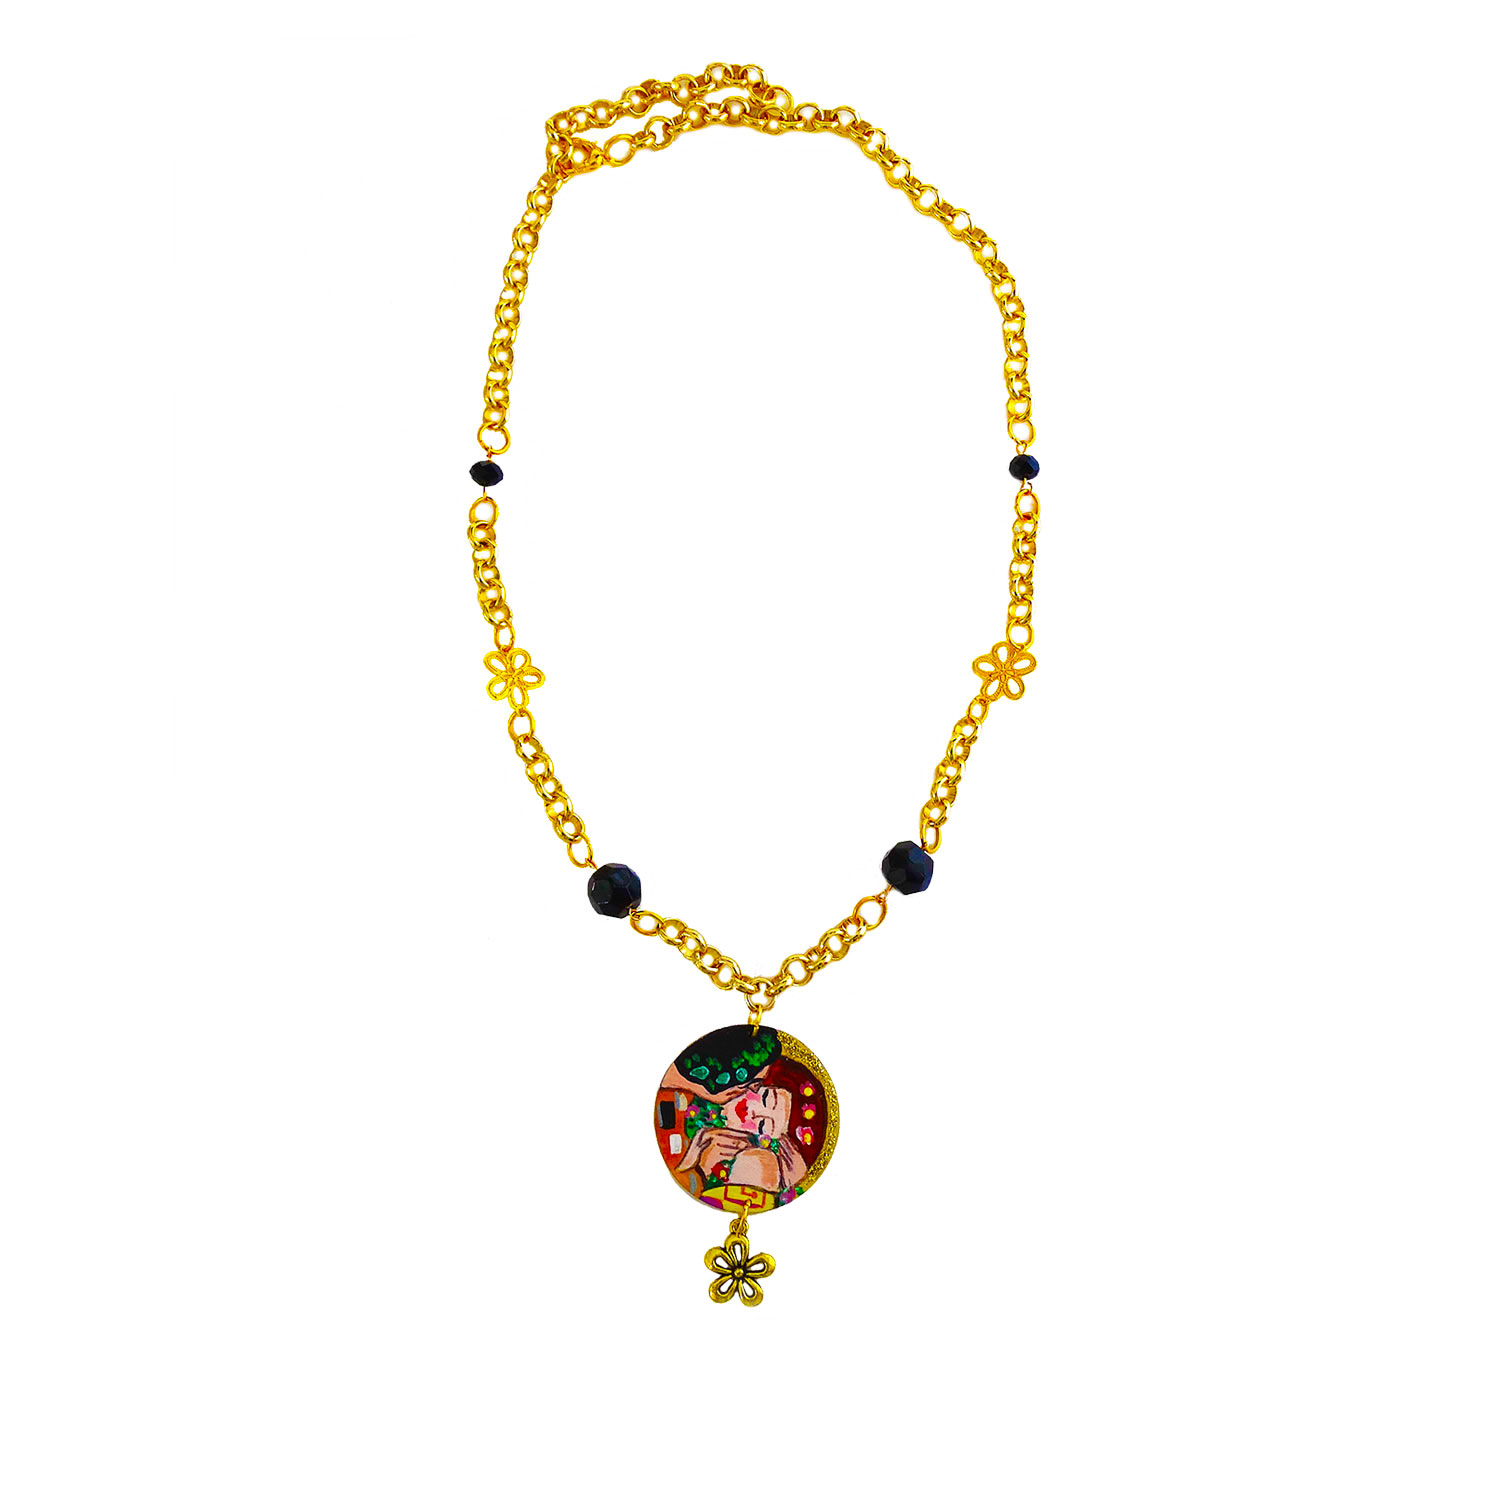 Hand-painted necklace - The kiss by Klimt